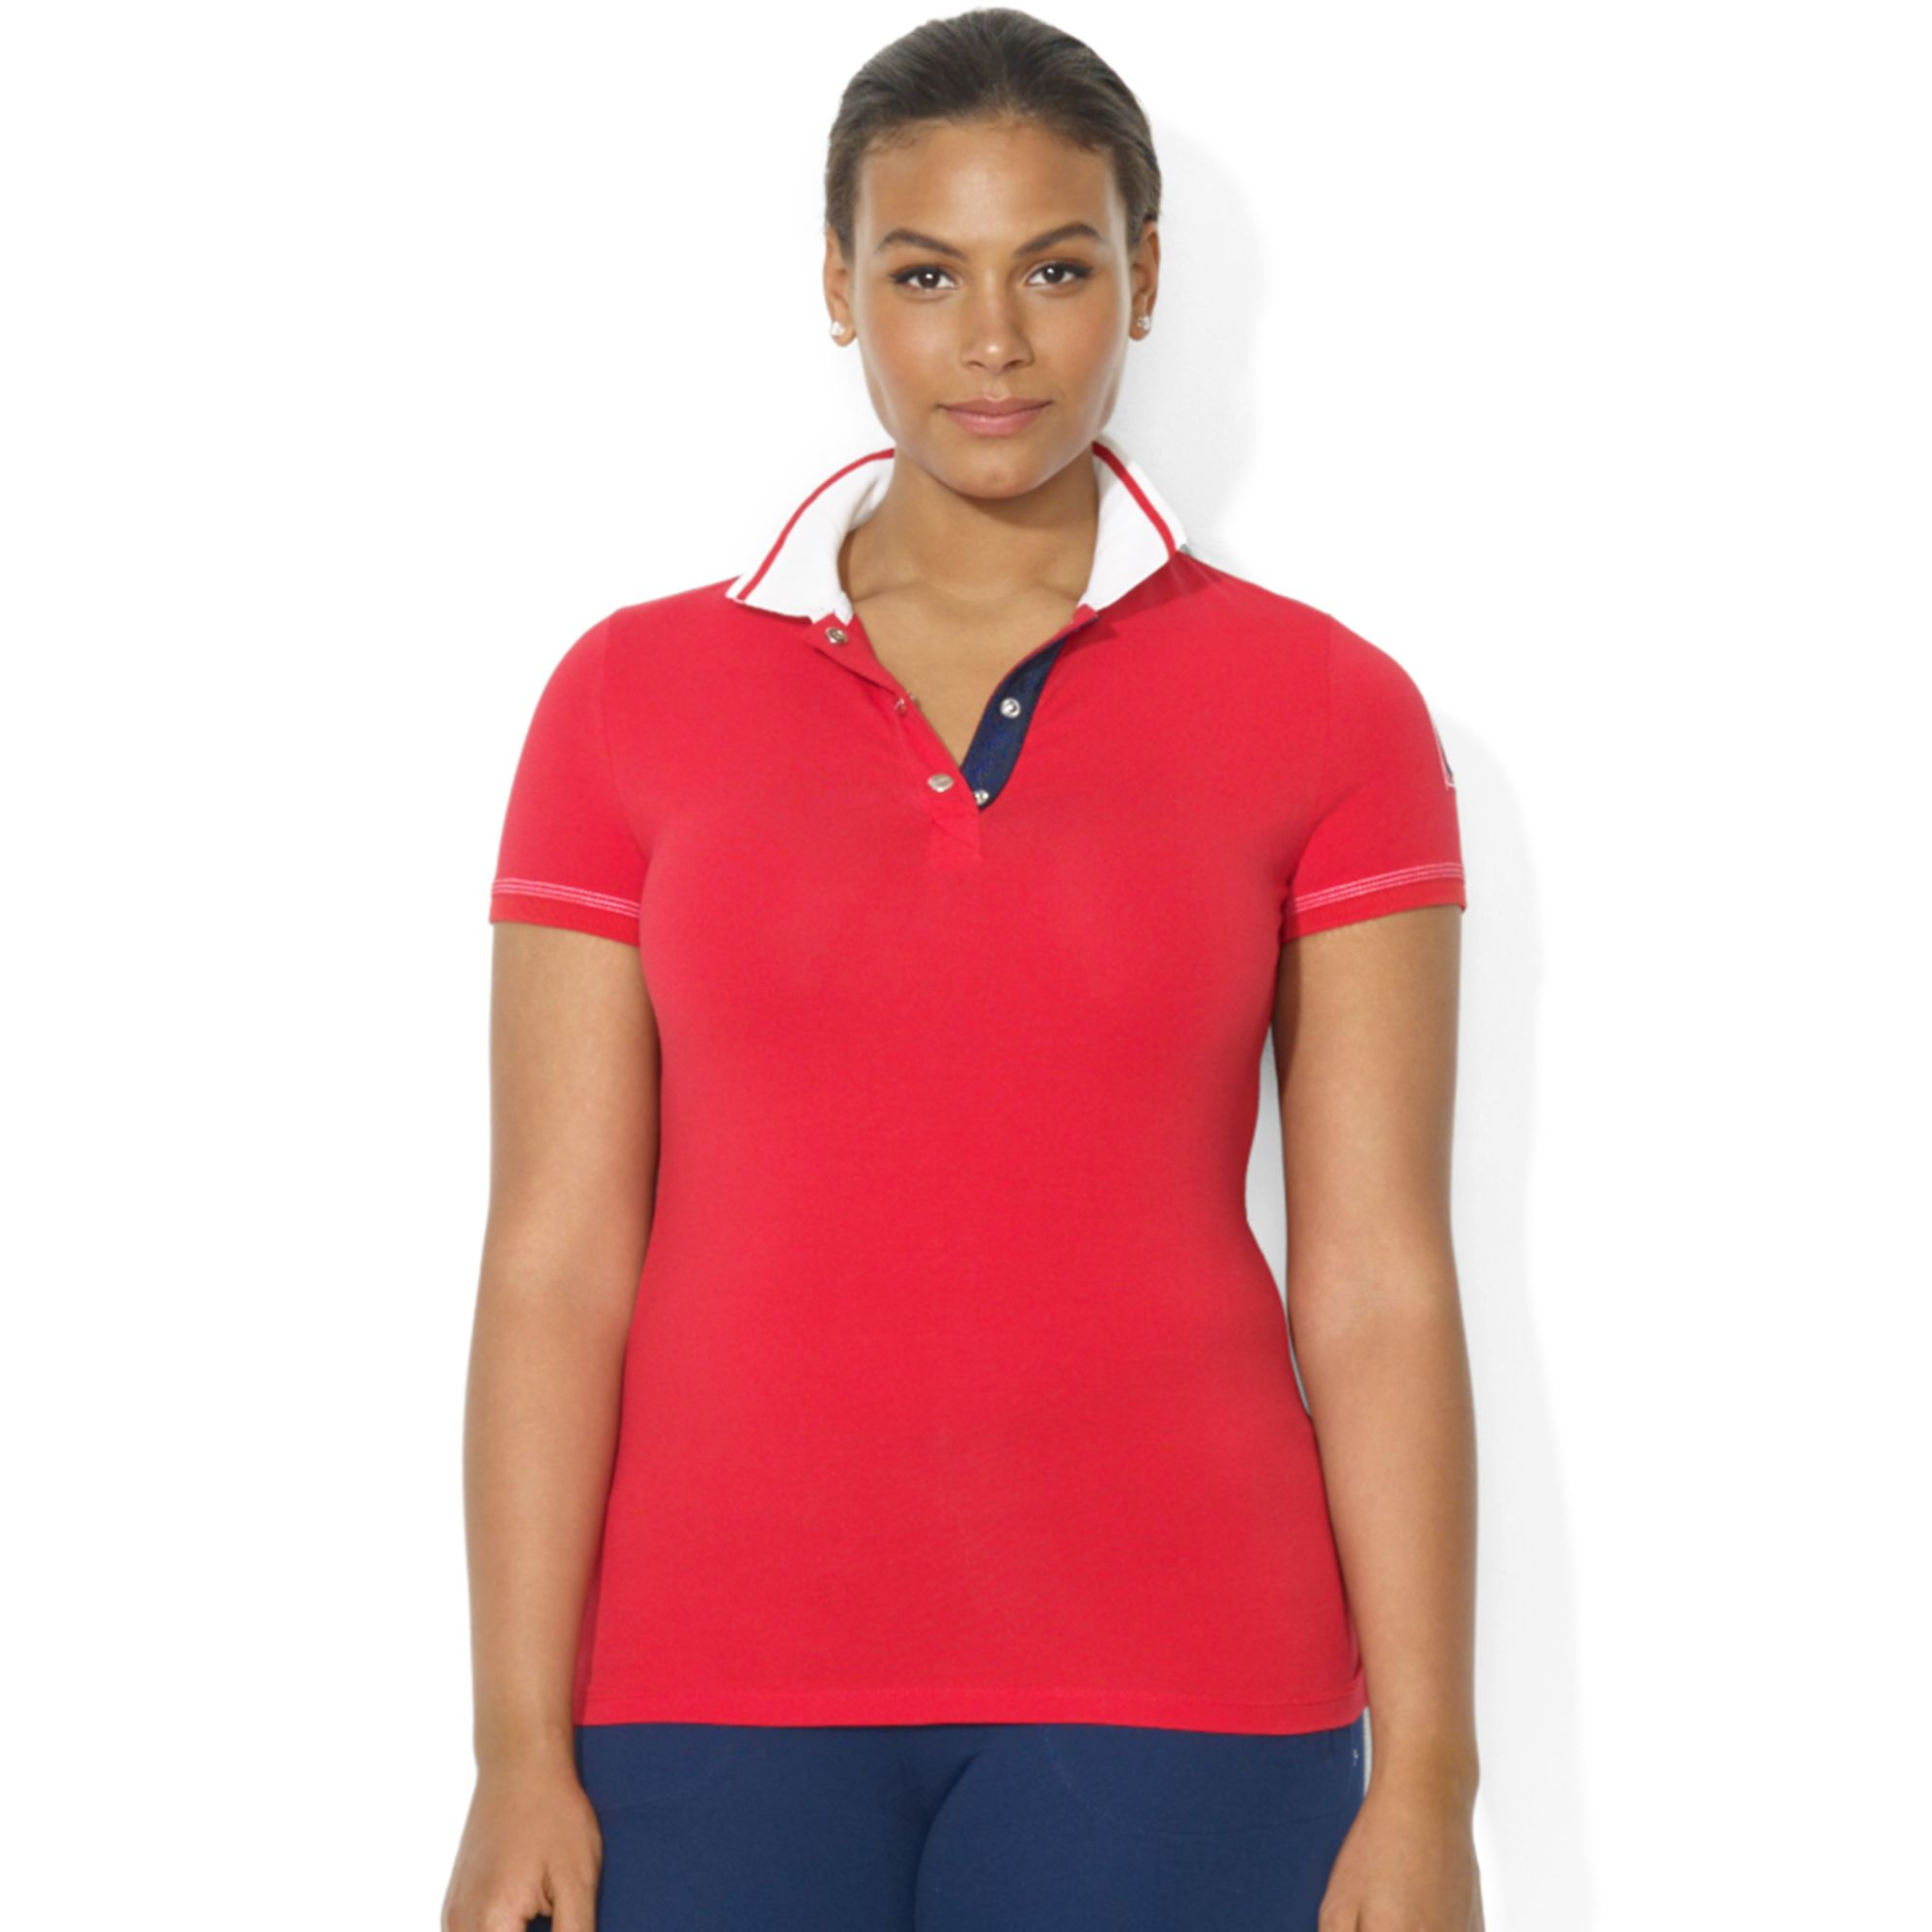 lyst lauren by ralph lauren plus size shortsleeve nautical polo shirt in red. Black Bedroom Furniture Sets. Home Design Ideas